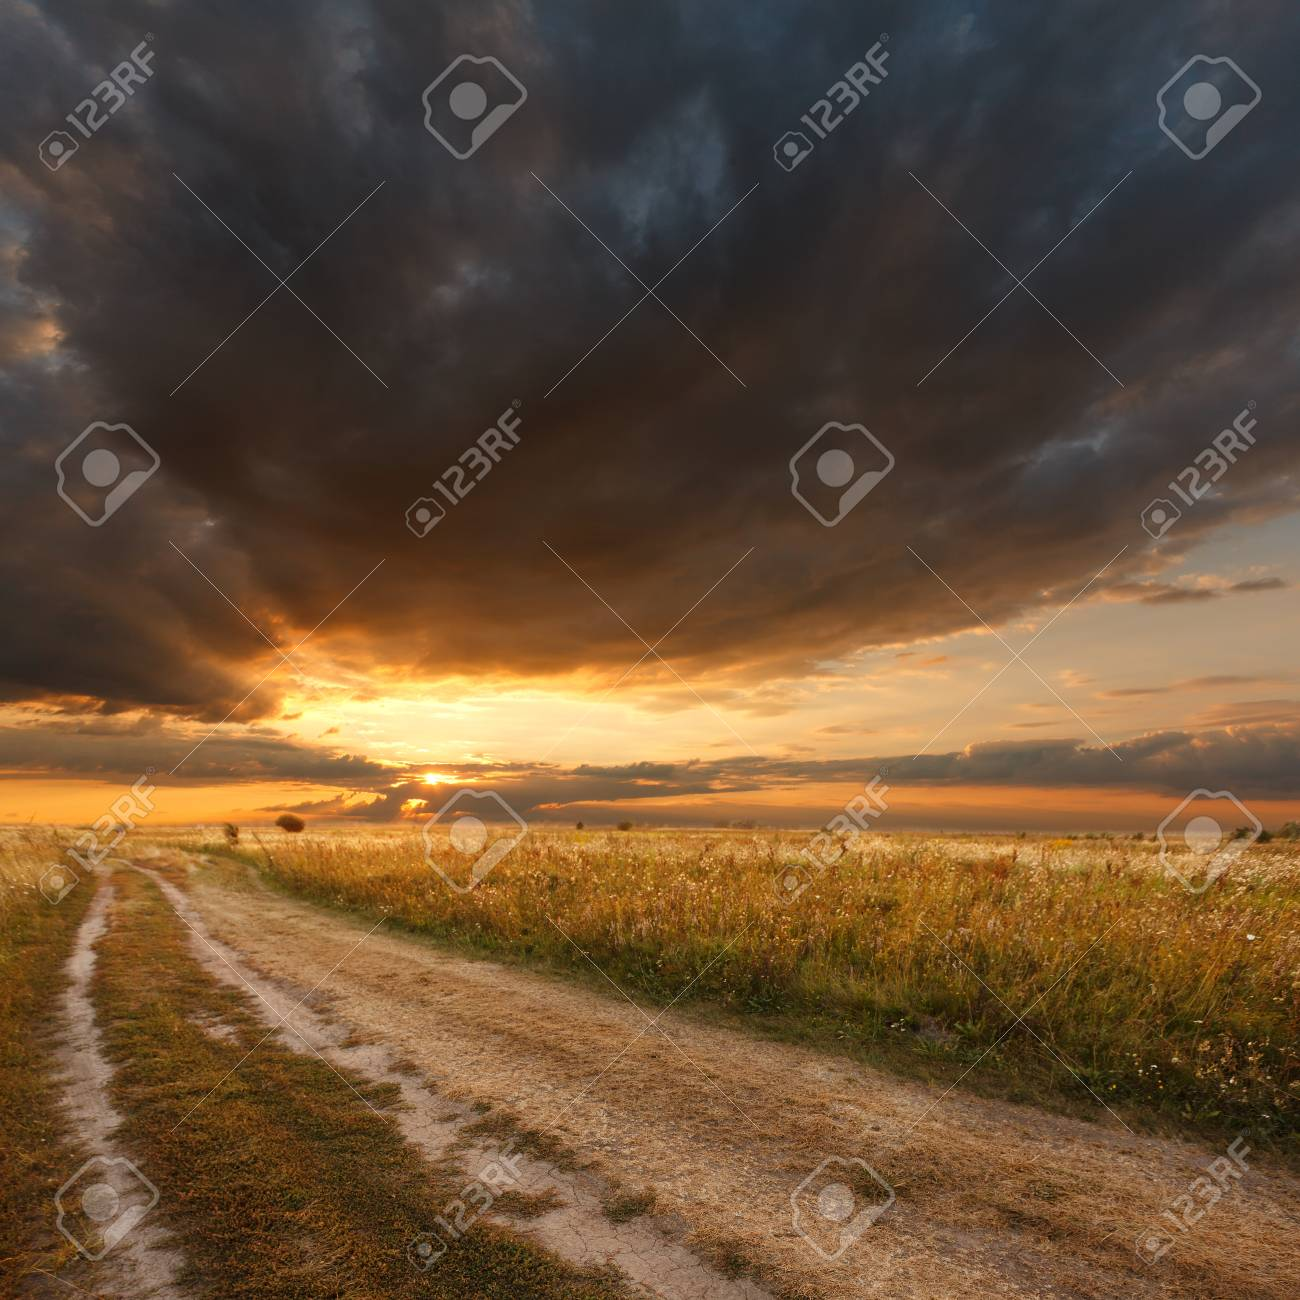 Beautiful view of the sunset in a field on a rural road Stock Photo - 15206561